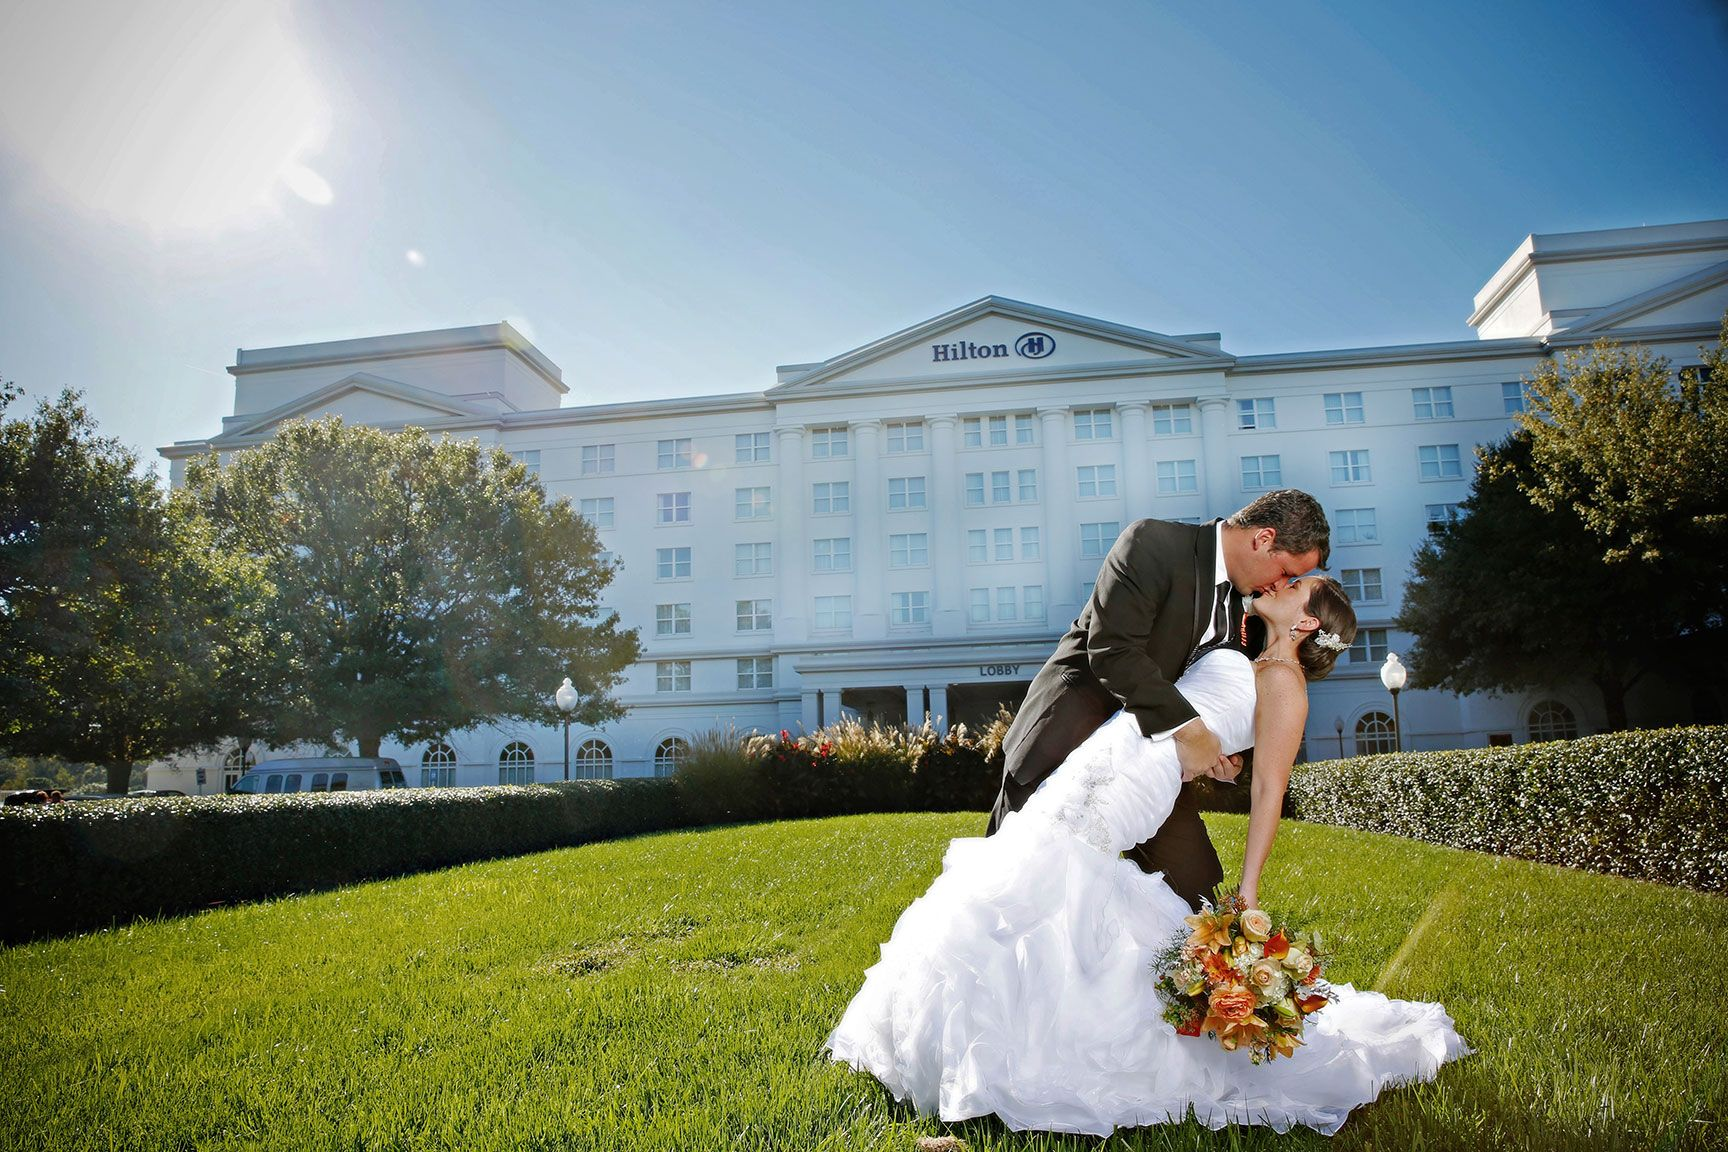 Hilton Marietta Hotel And Conference Center Offers 3 Distinct